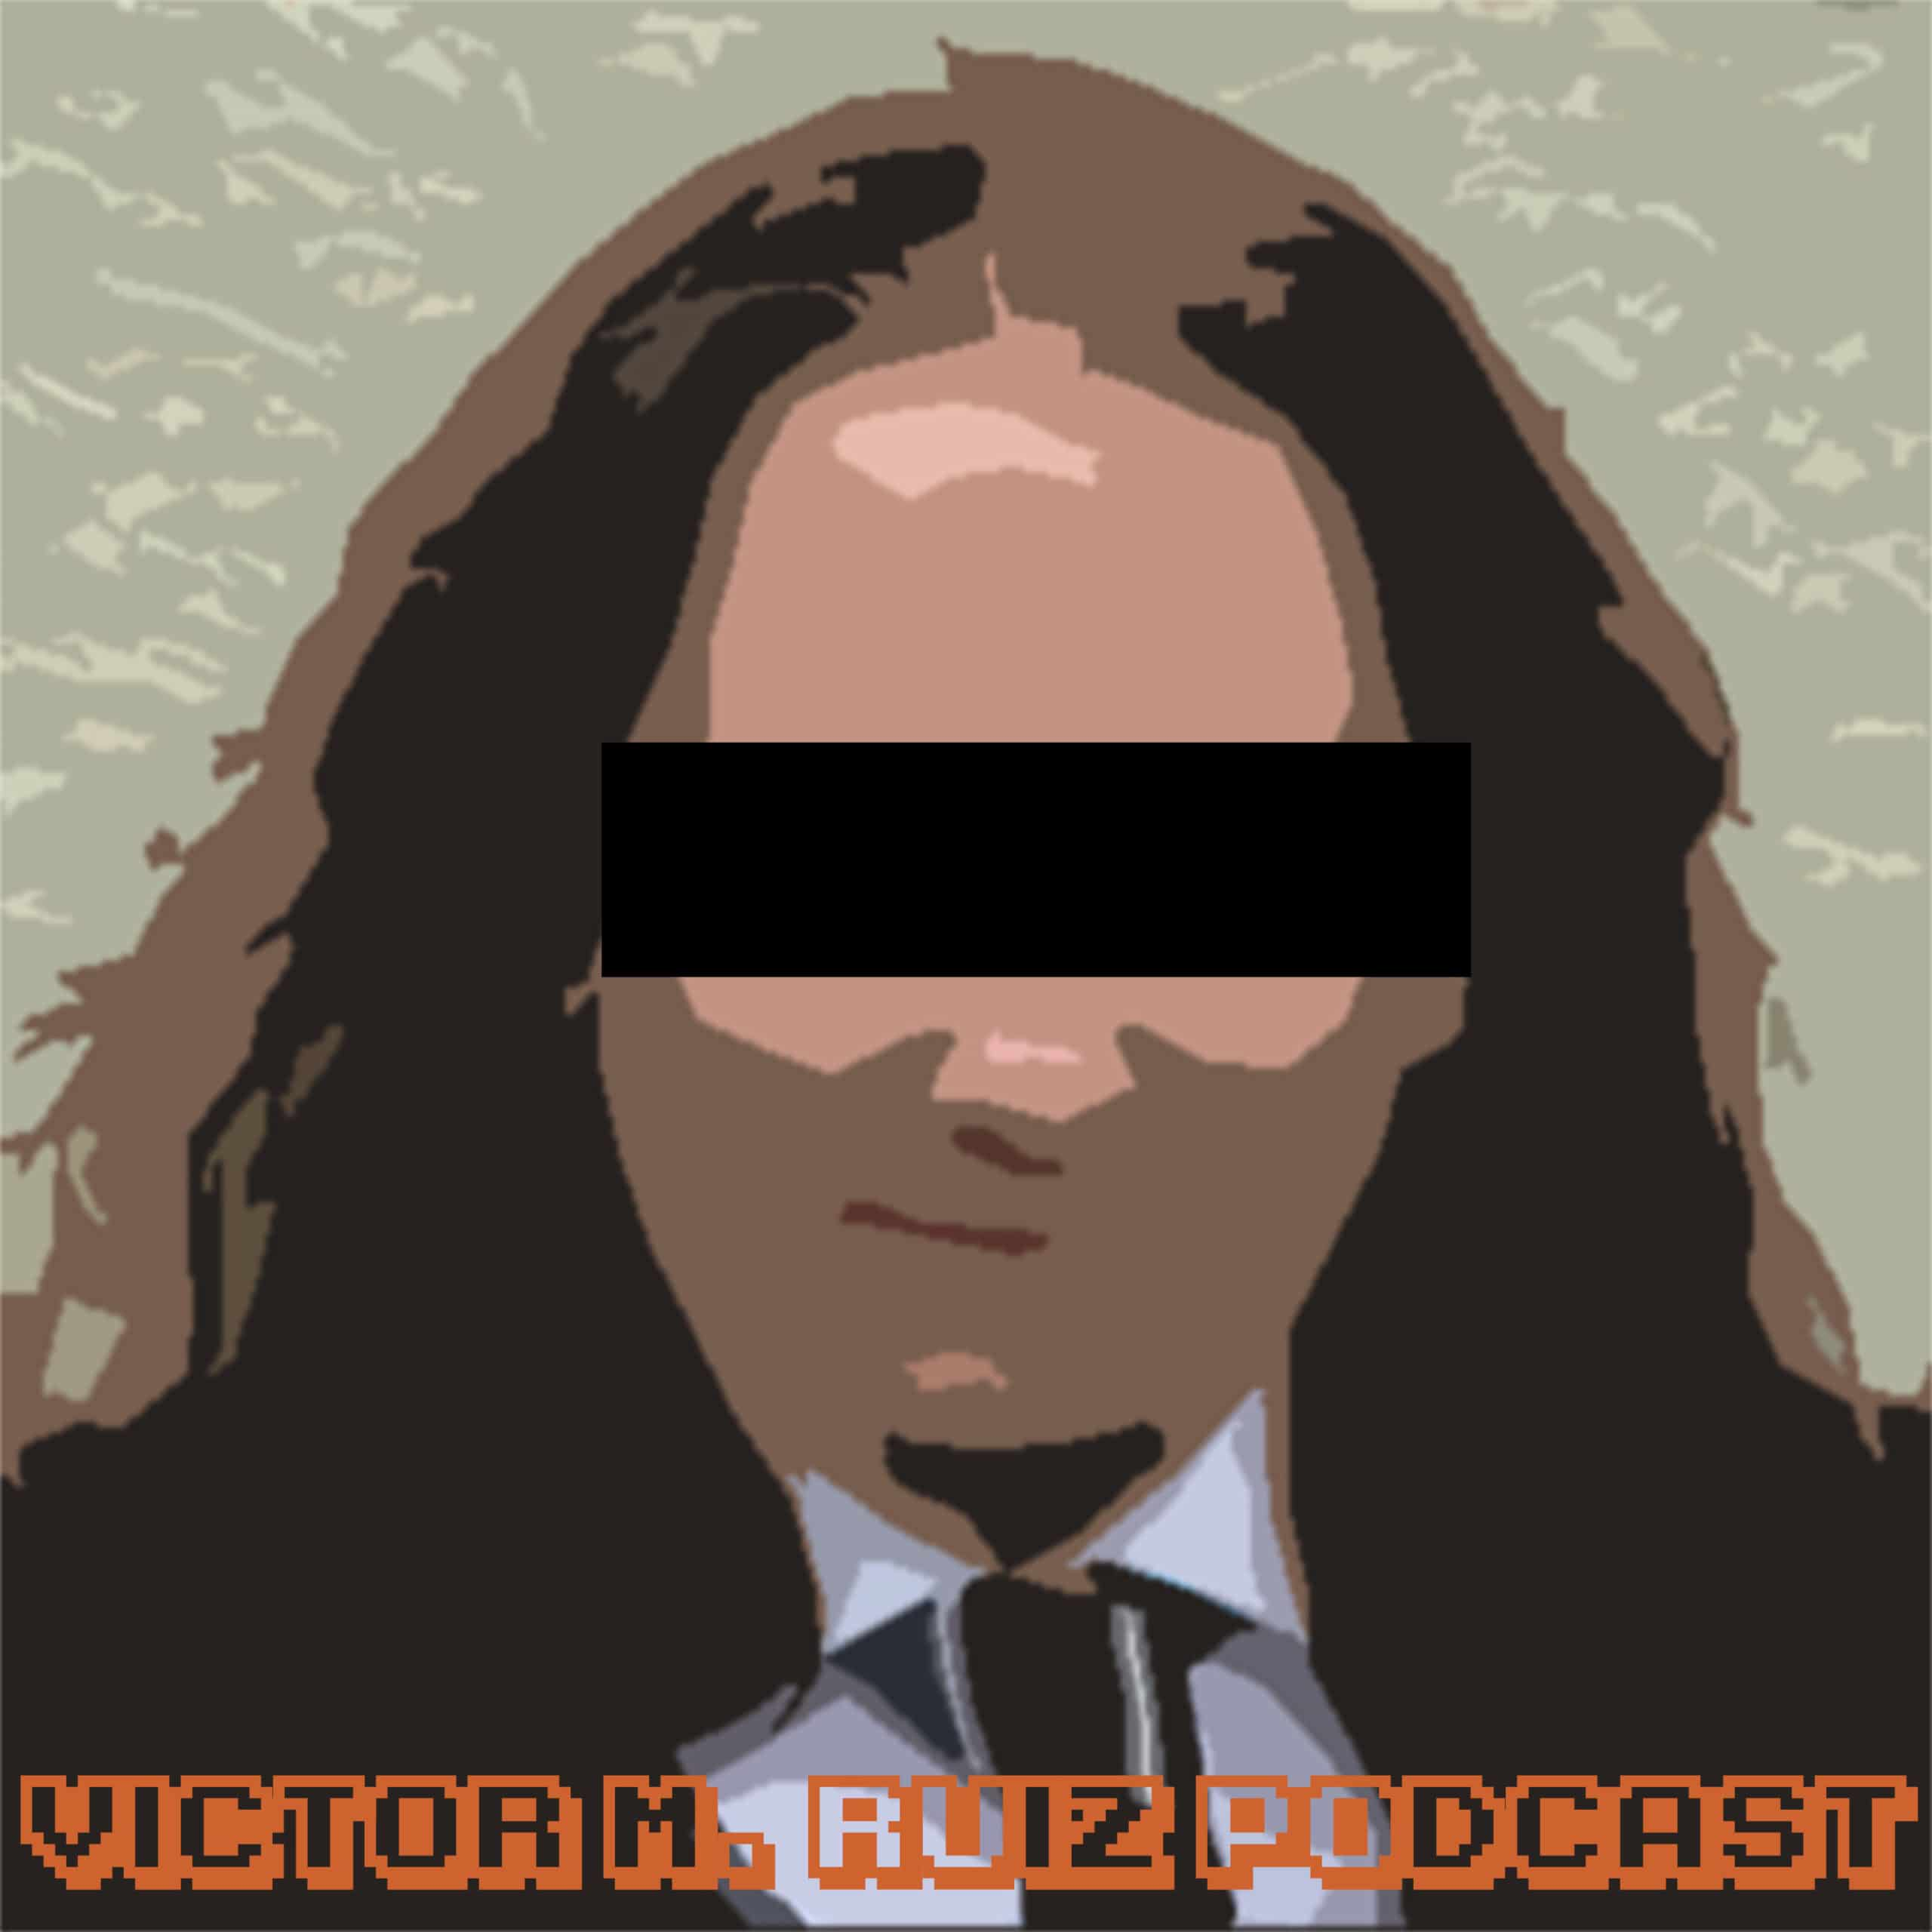 Victor M. Ruiz Podcast